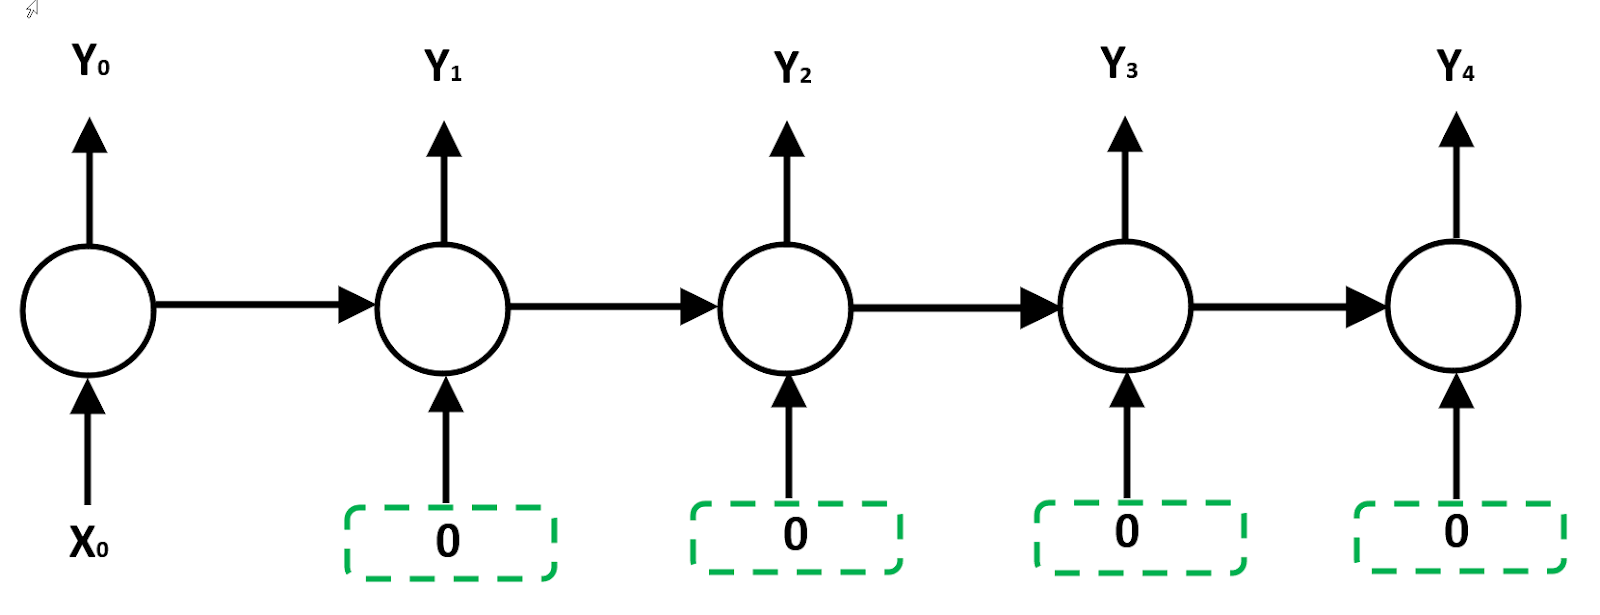 VECTOR TO SEQUENCE